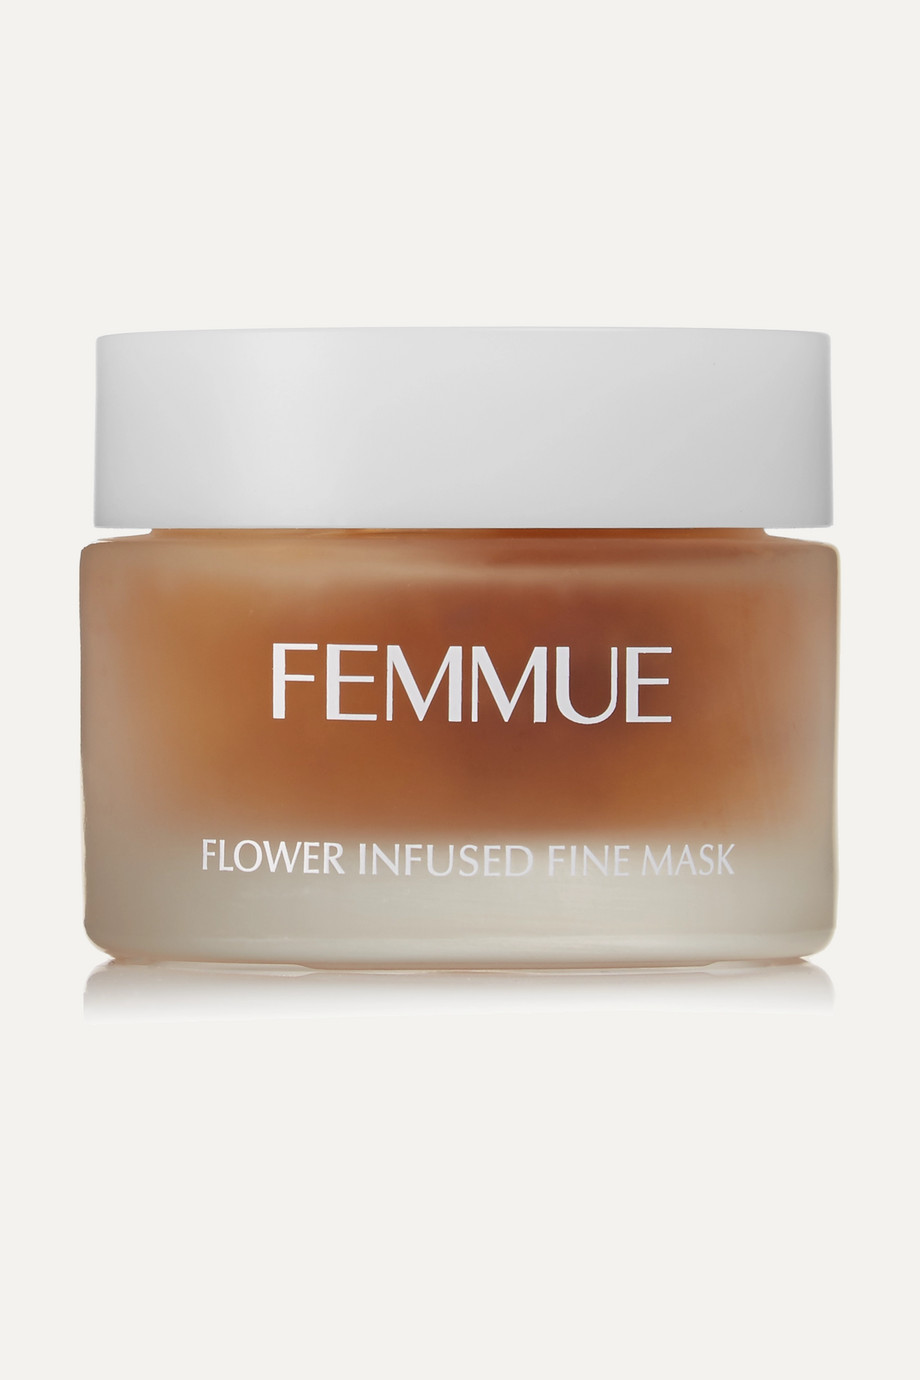 FEMMUE Flower Infused Fine Mask, 50g